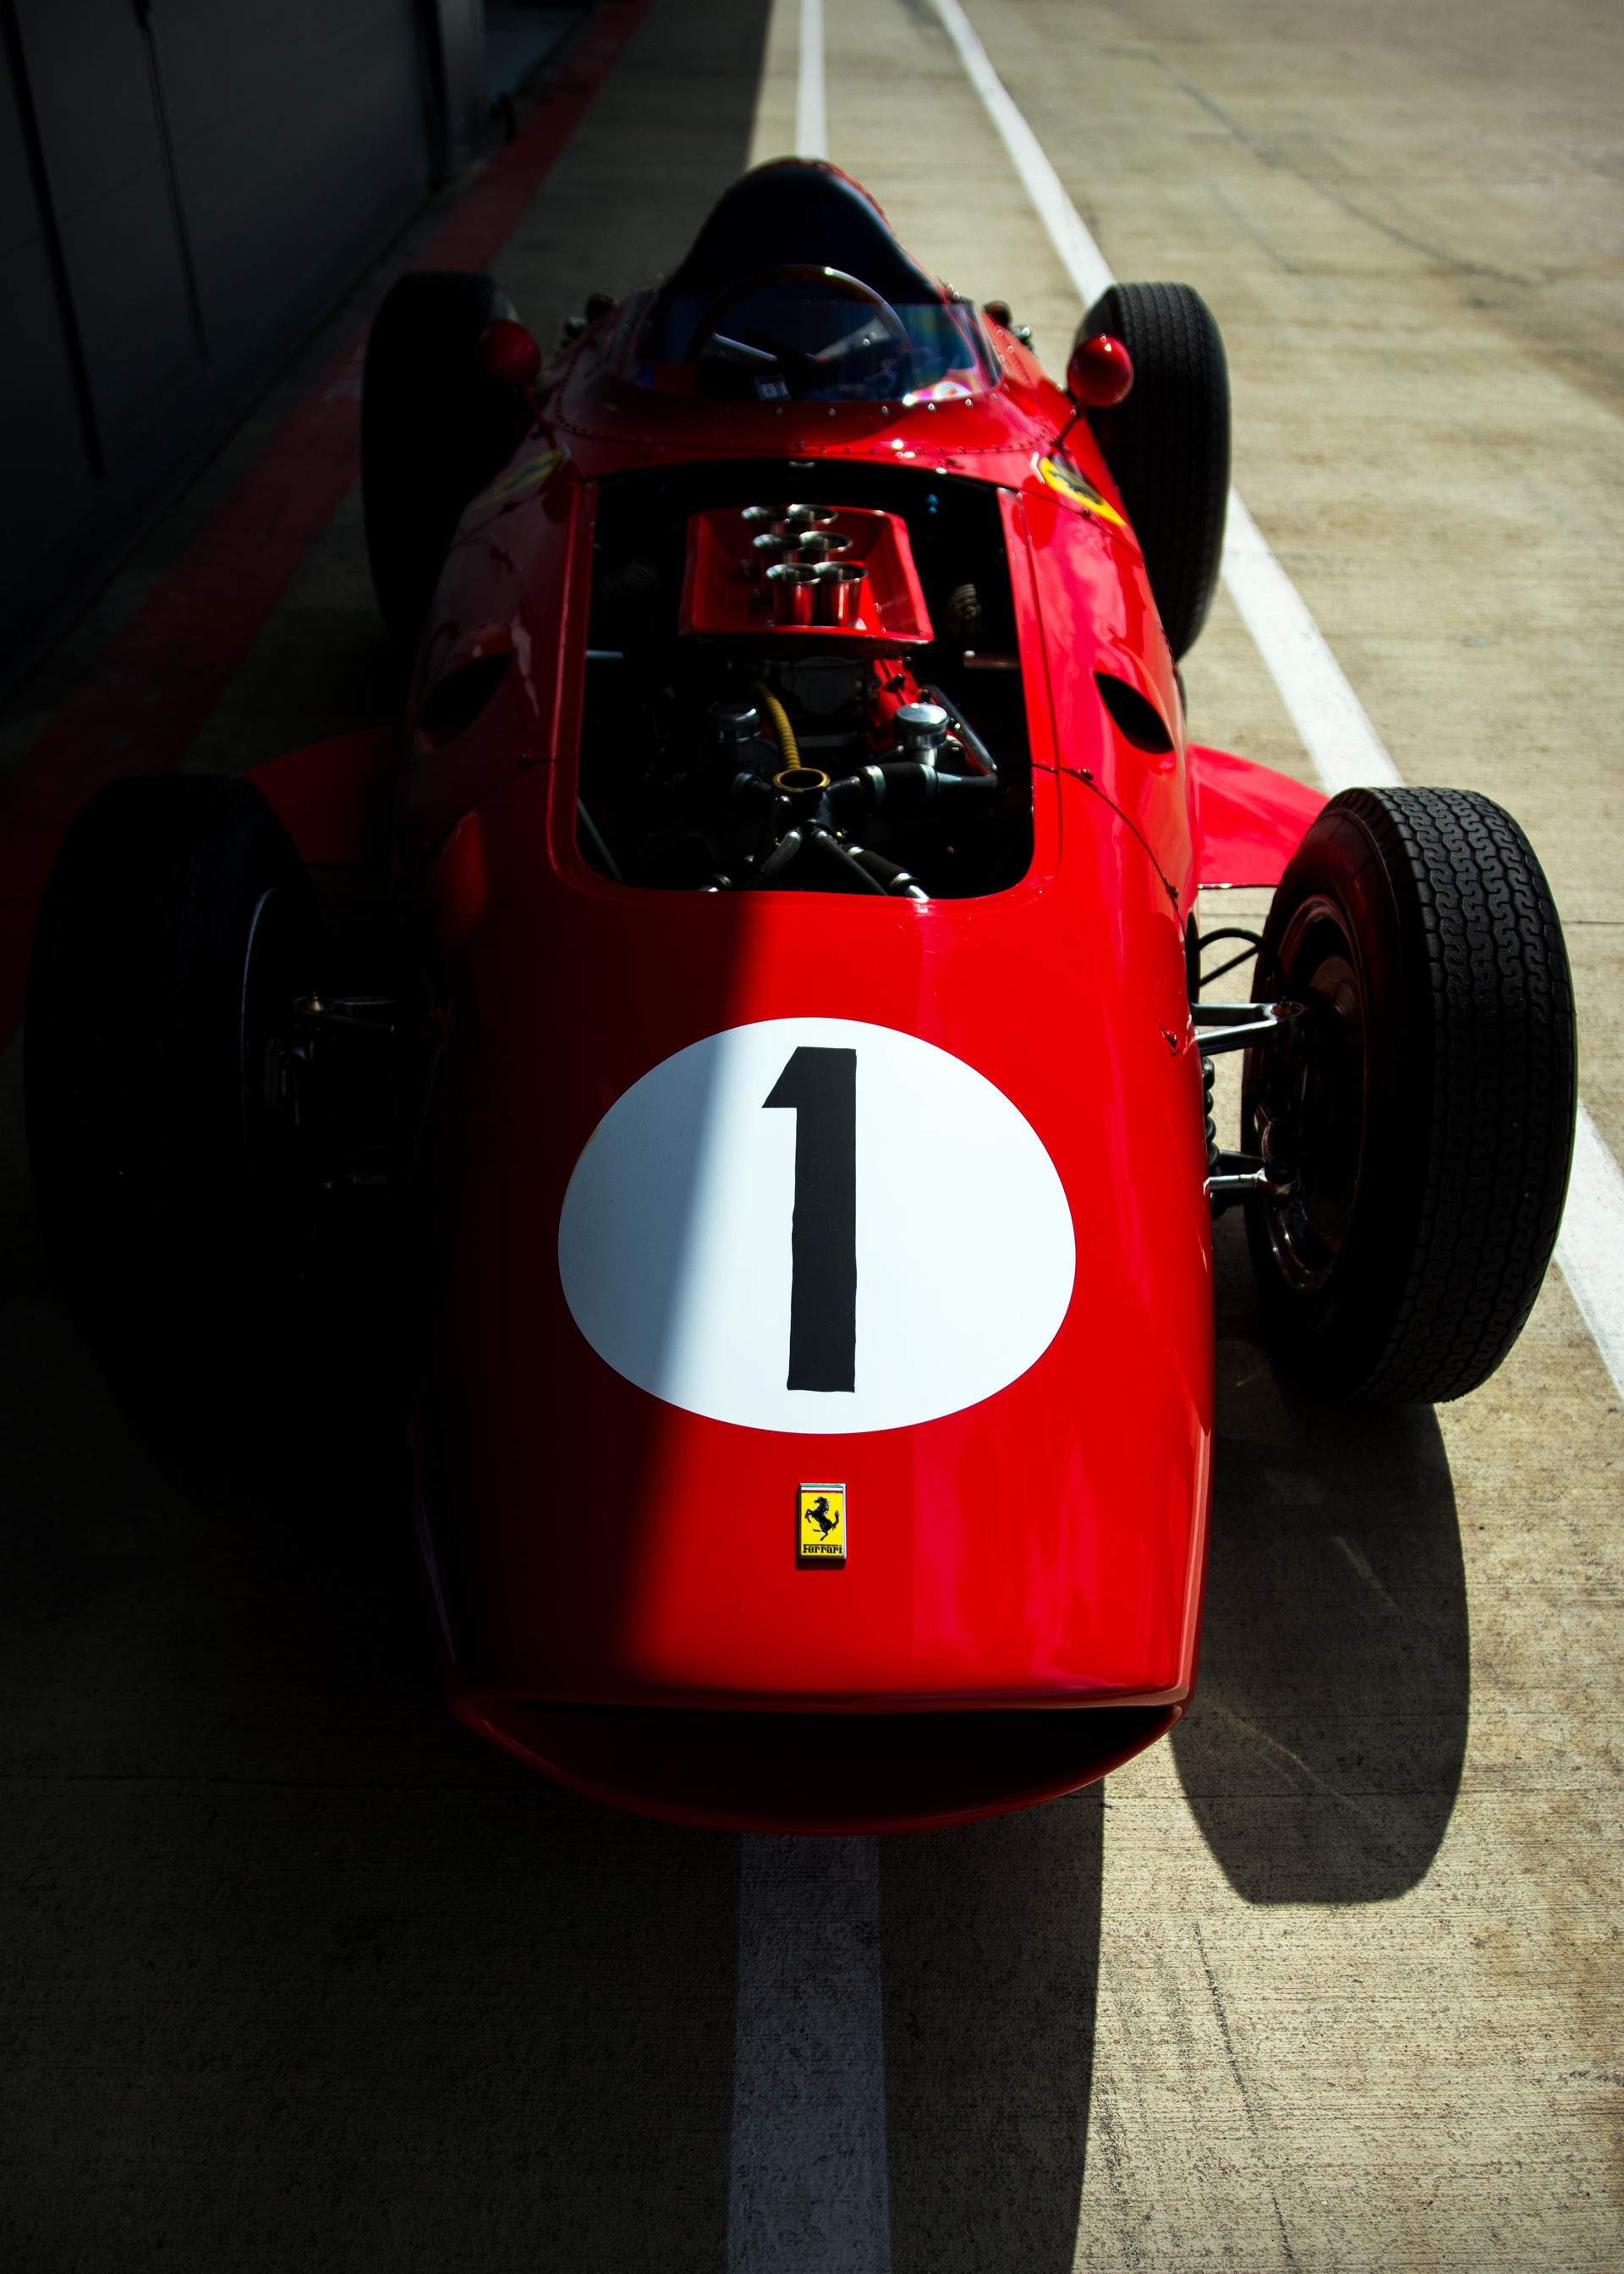 Tony Best's 1960 Ferrari 246 Dino at the 2018 Silverstone Classic Preview Day